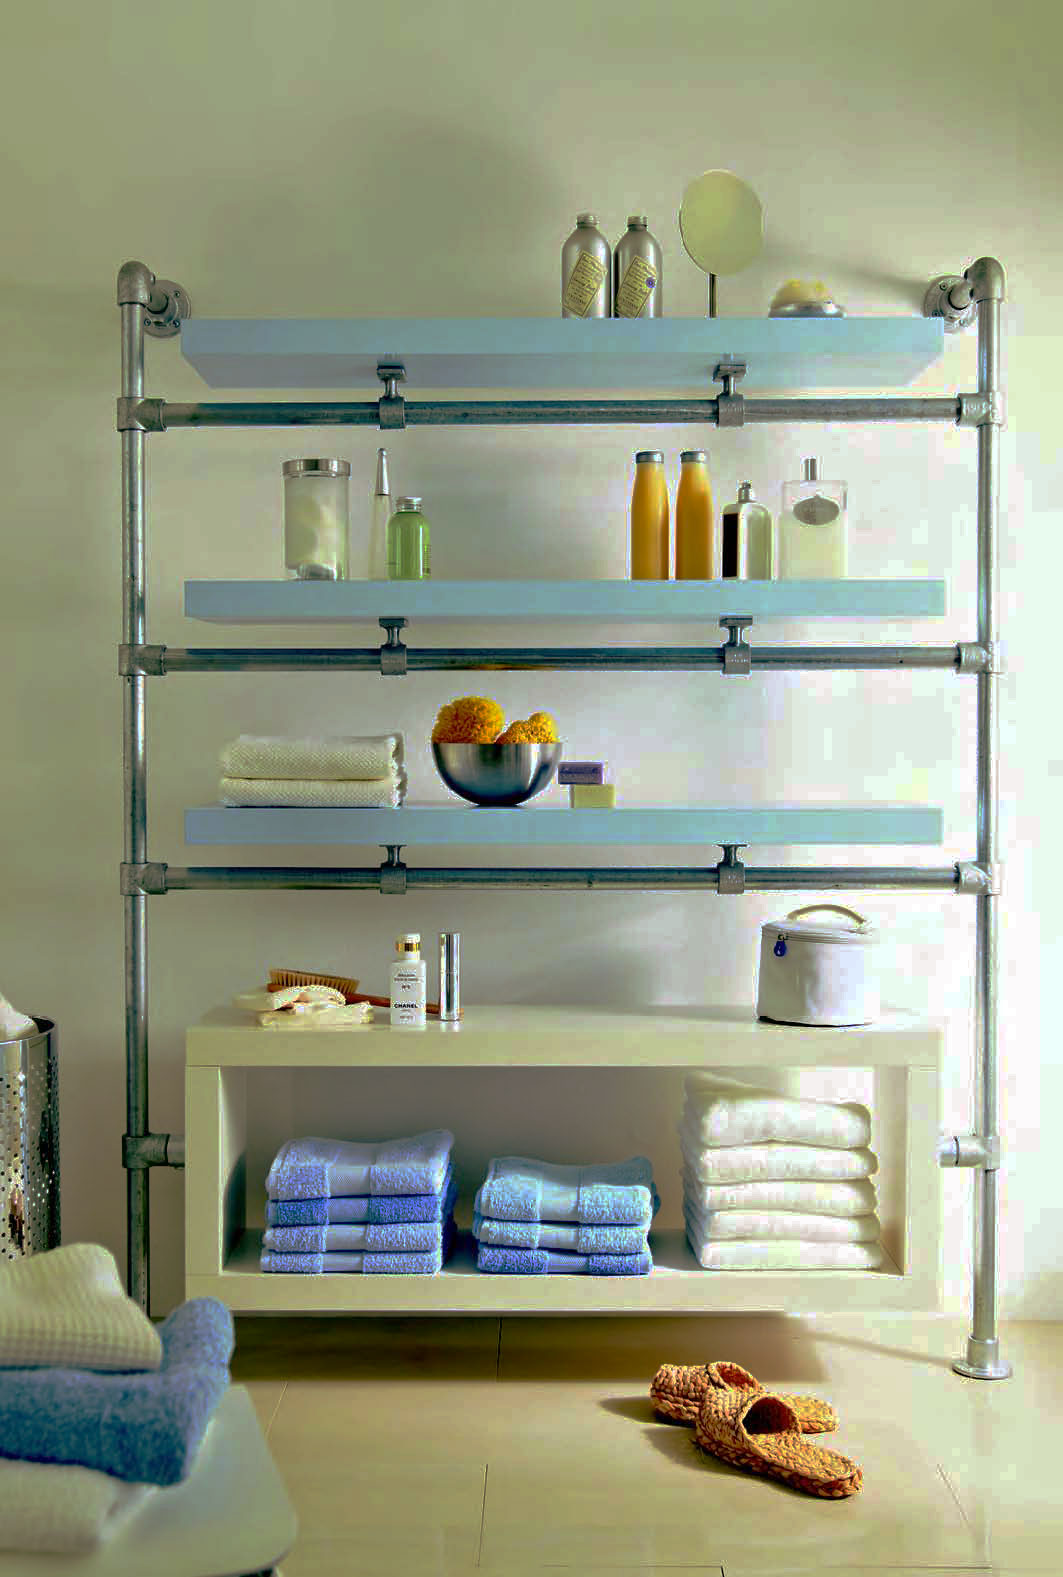 Floating Shelves Ideas Book Of Floating Shelves Bathroom Ideas In Thailand By Sophia